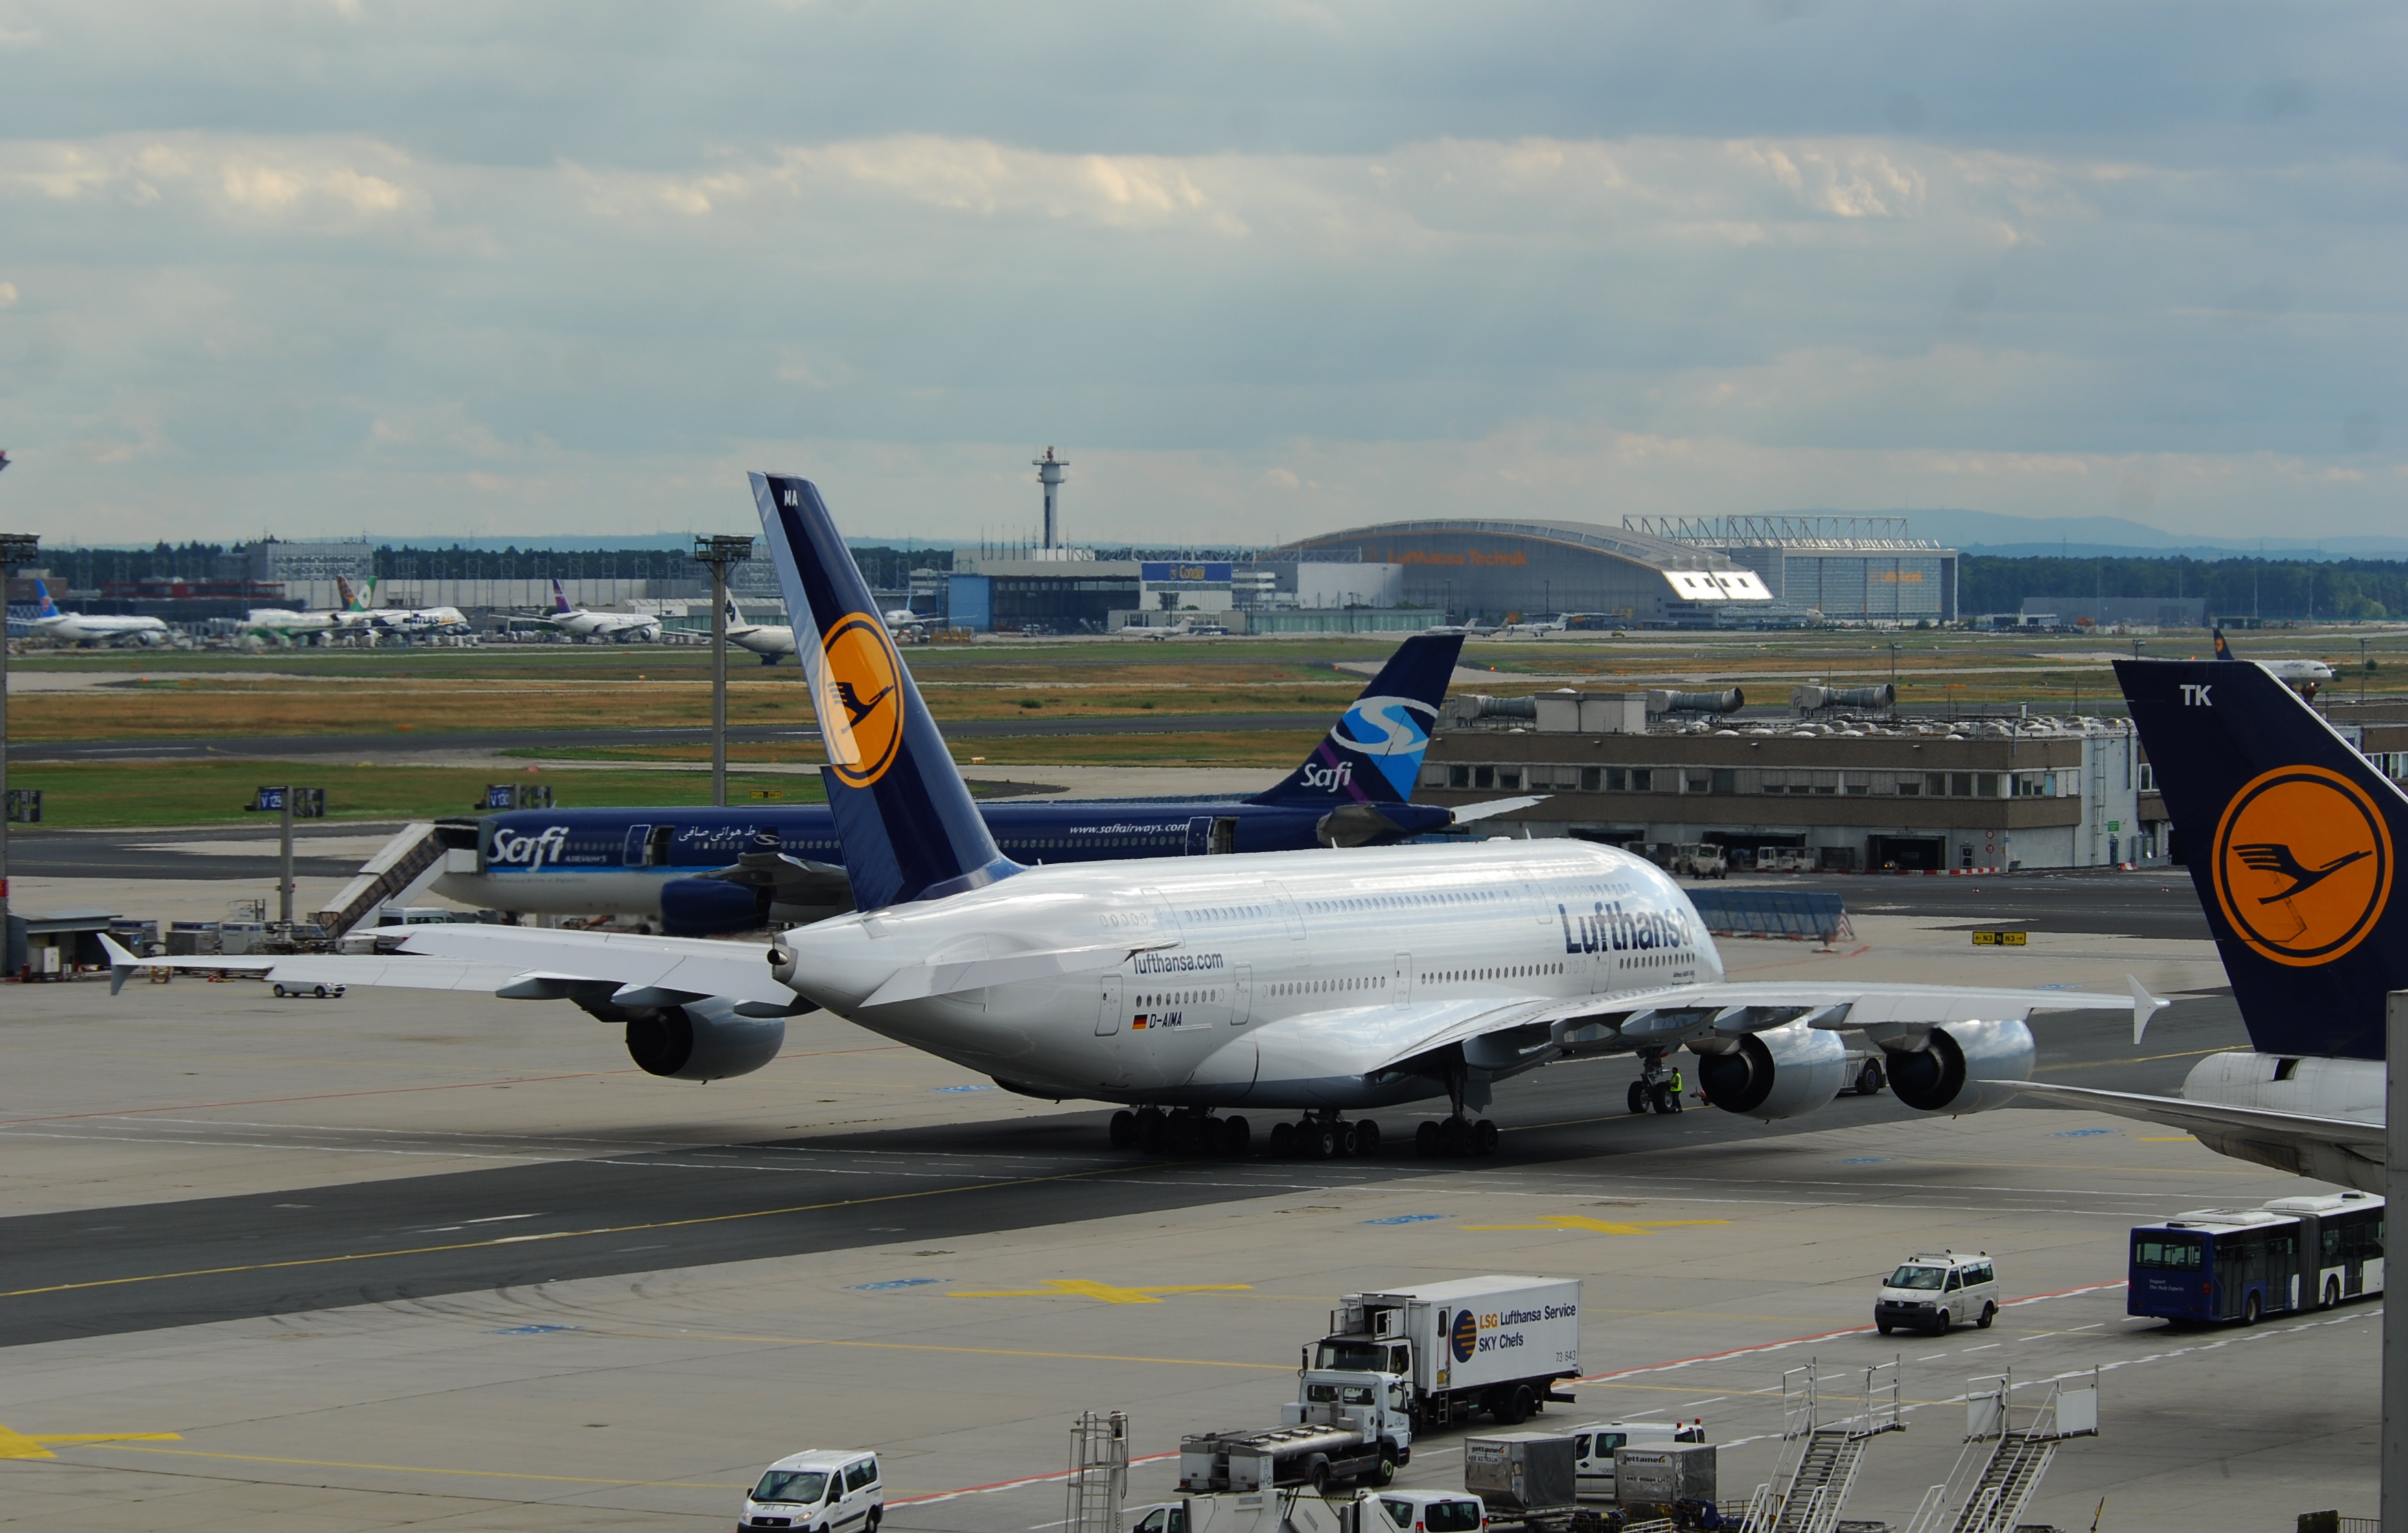 file lufthansa airbus a380 800 d aima fra 585bx 4878344567 jpg wikimedia commons. Black Bedroom Furniture Sets. Home Design Ideas